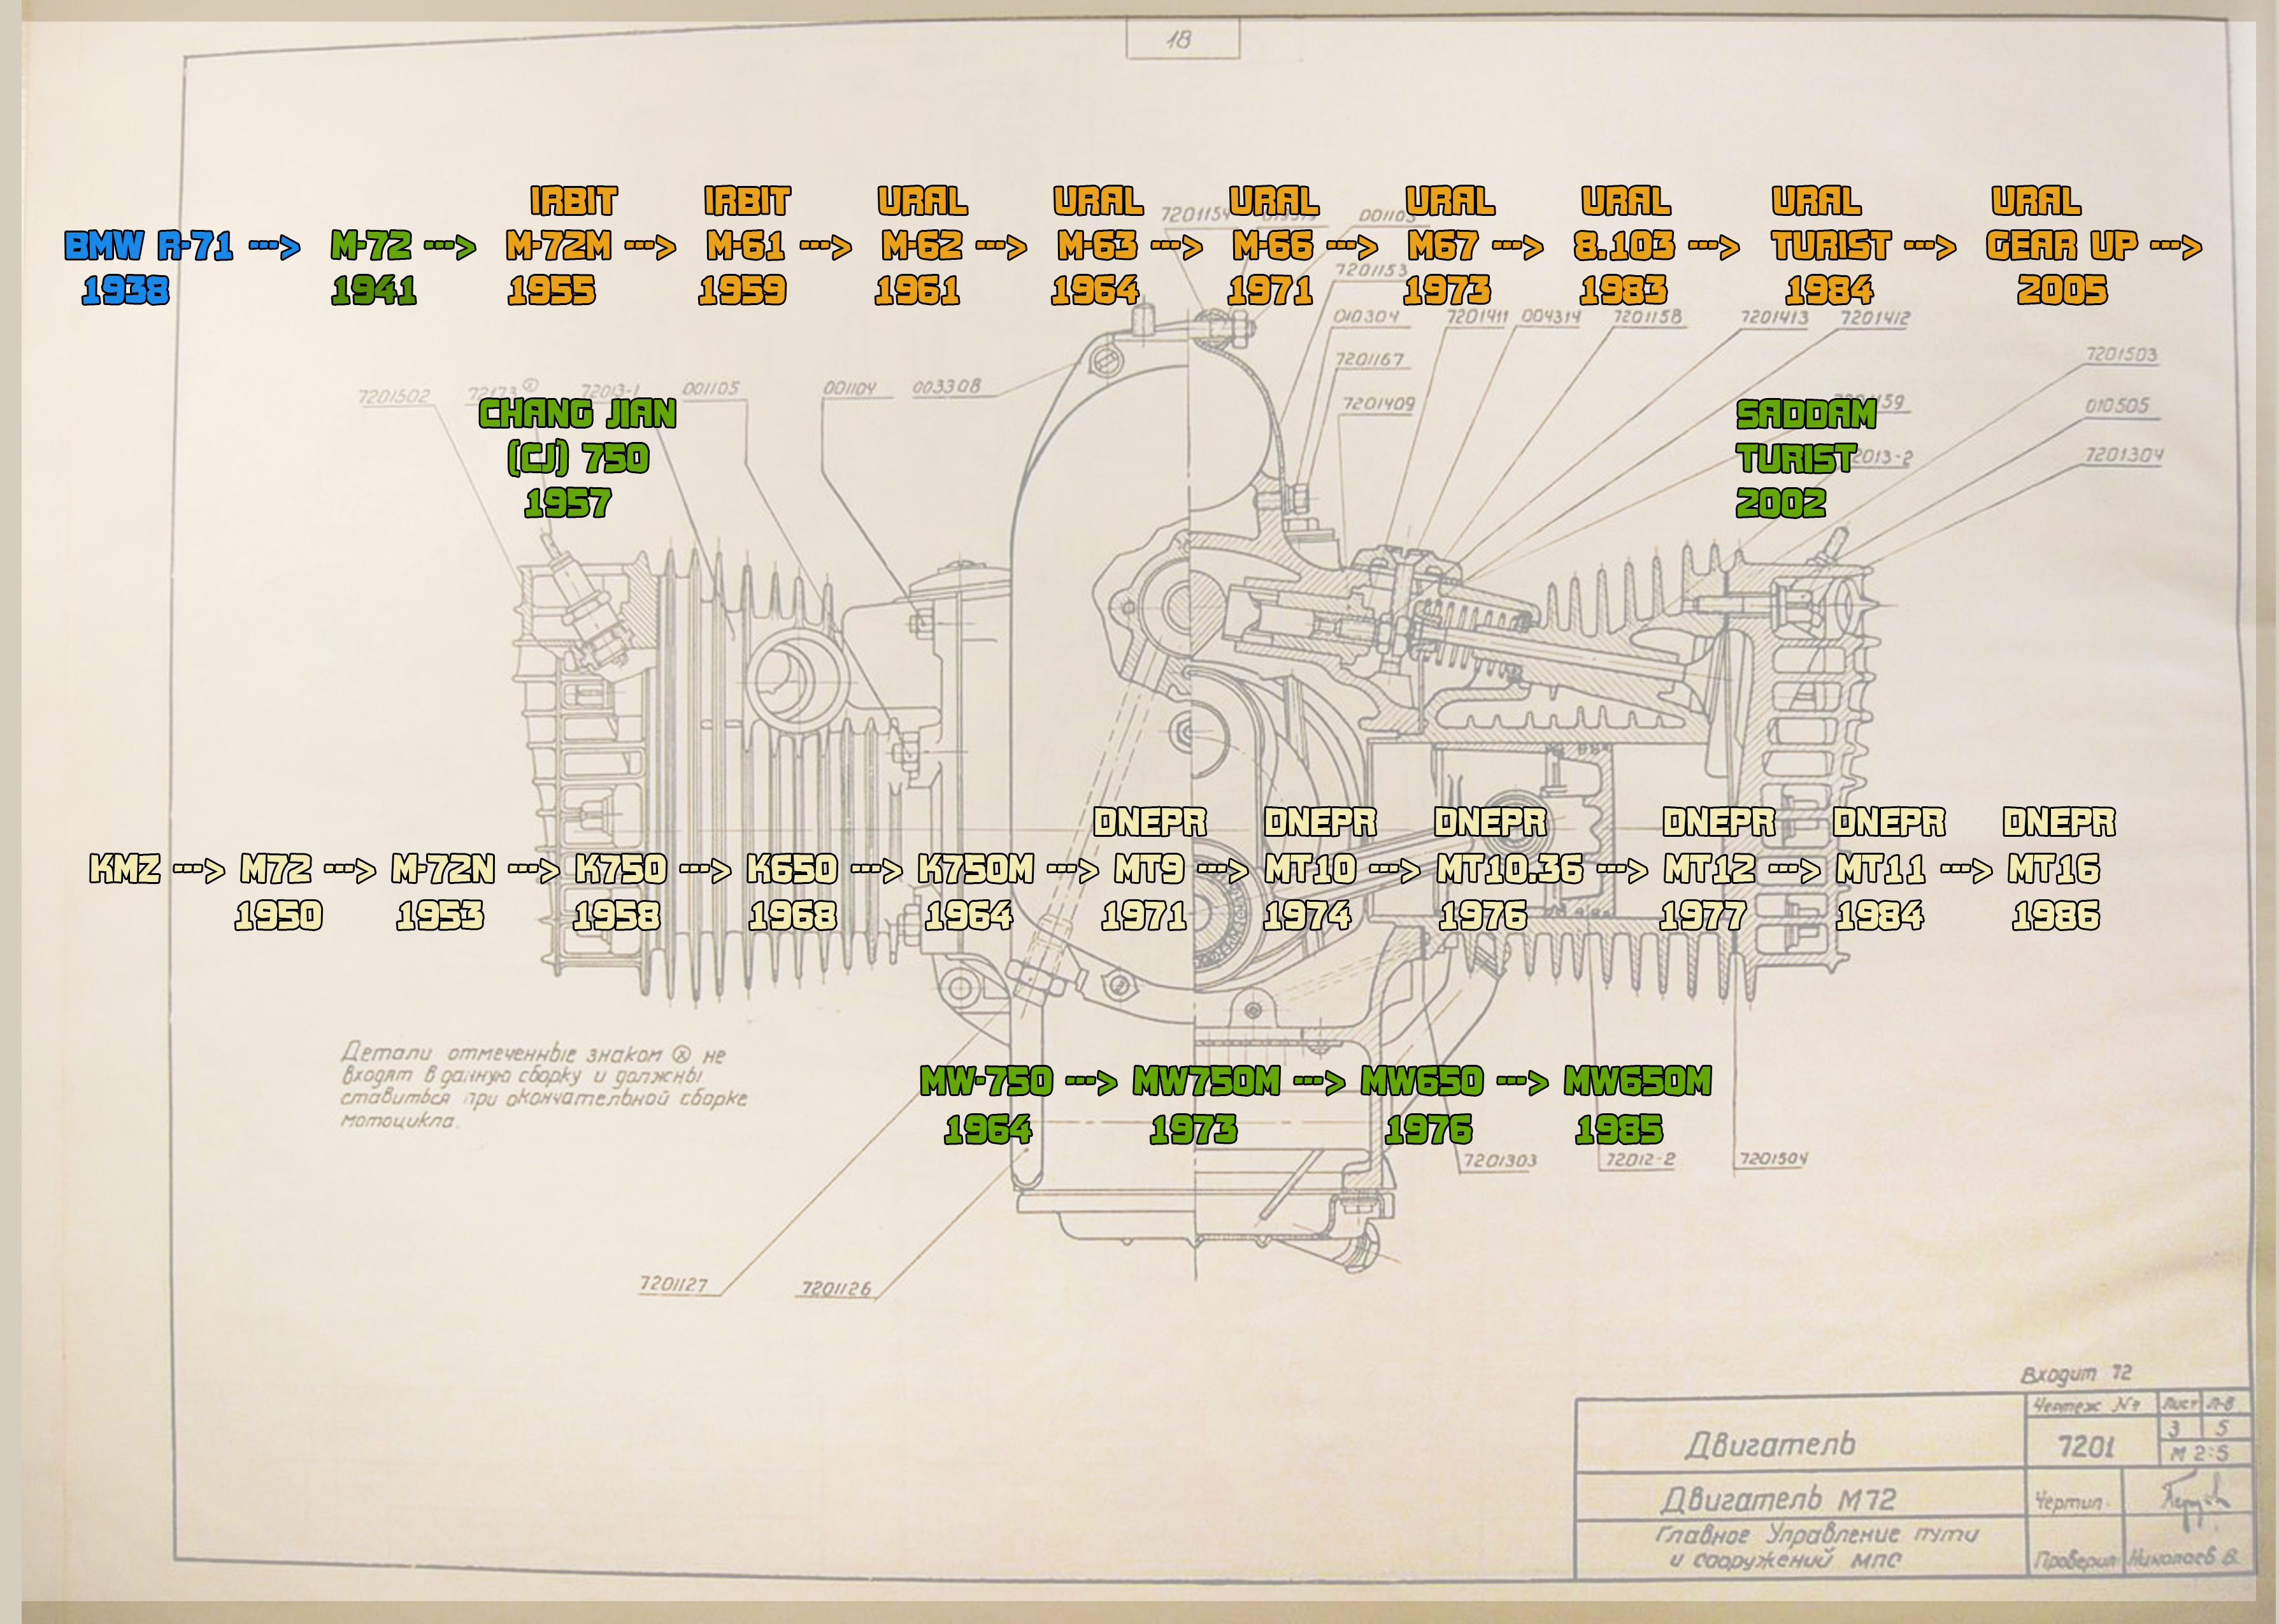 M 72 To Ural Page 4 Soviet Steeds Engine Diagram Image